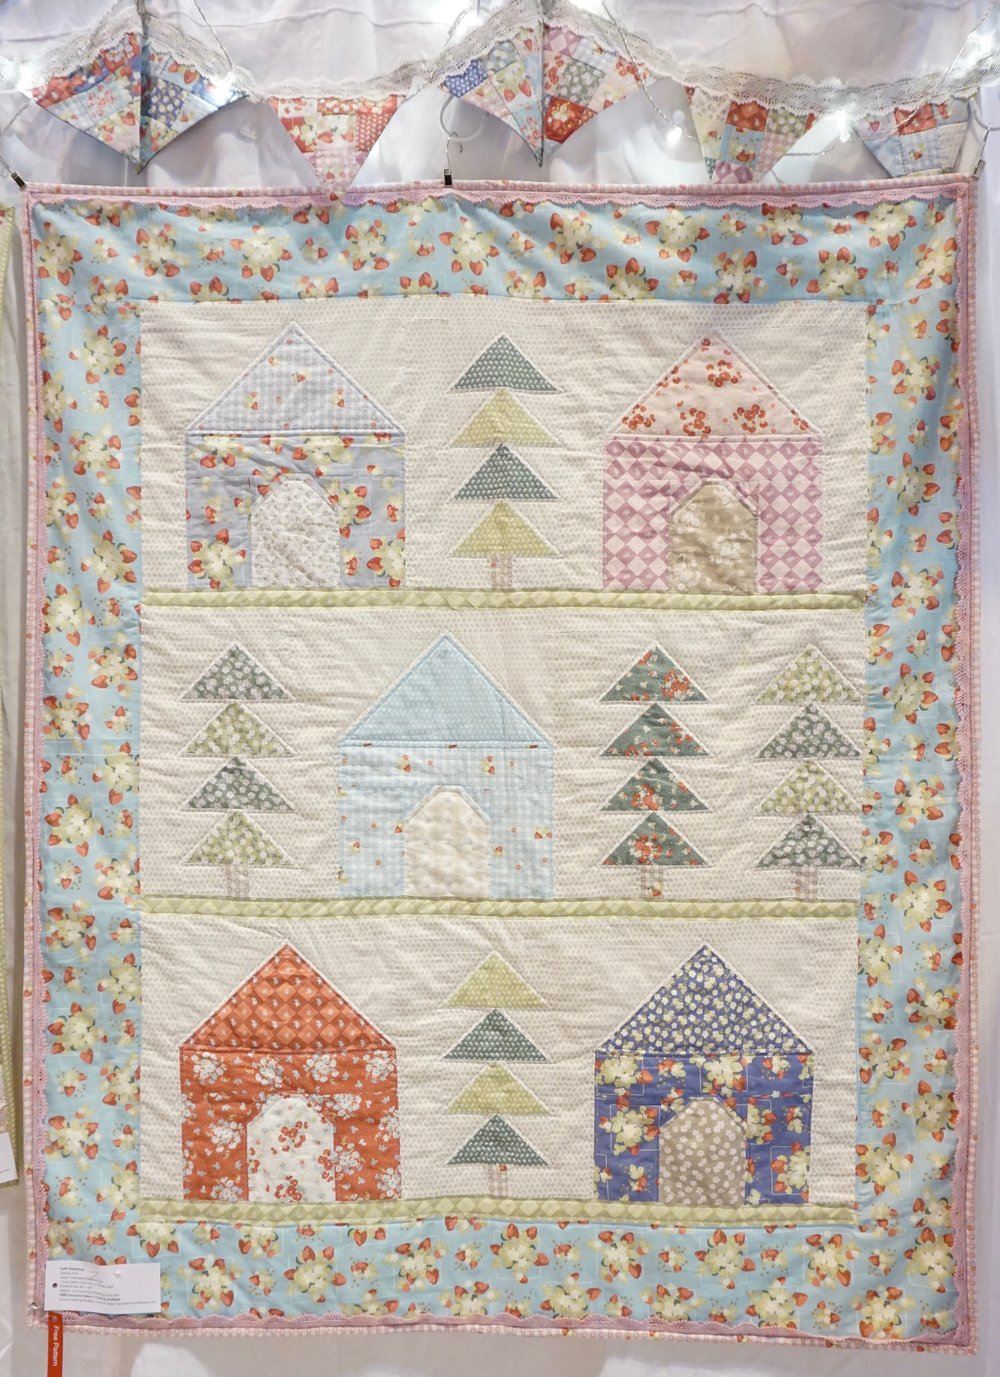 Cozy Cabins Quilt designed by Jera Brandvig / Quilted by Faith Essenburg